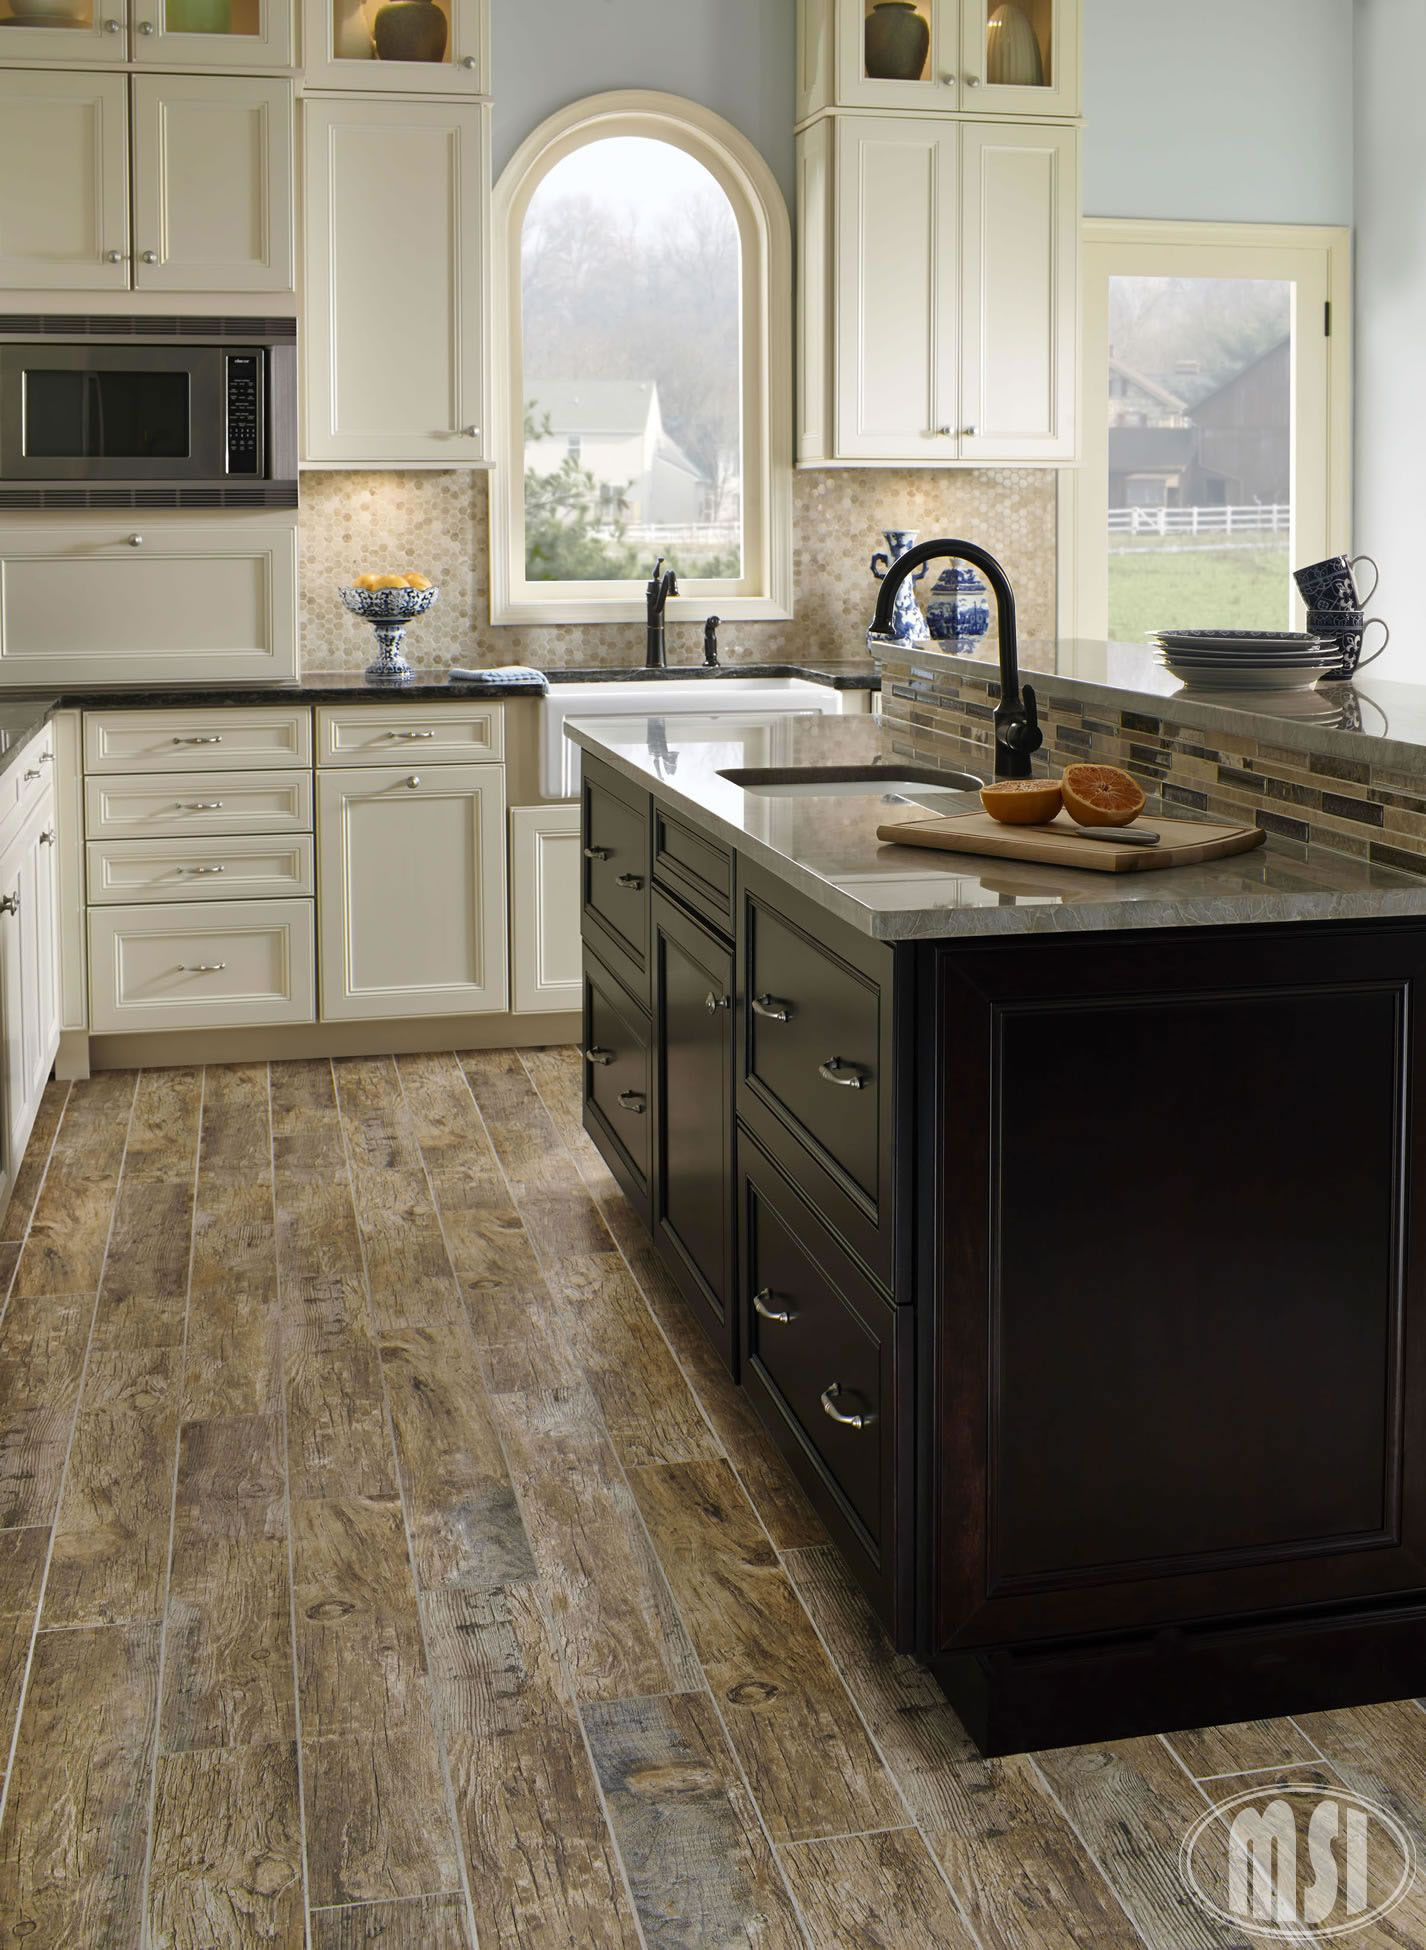 Porcelain Or Ceramic Tile For Kitchen Floor Perfect Kitchen Floor No Need To Worry About Real Wood Floors